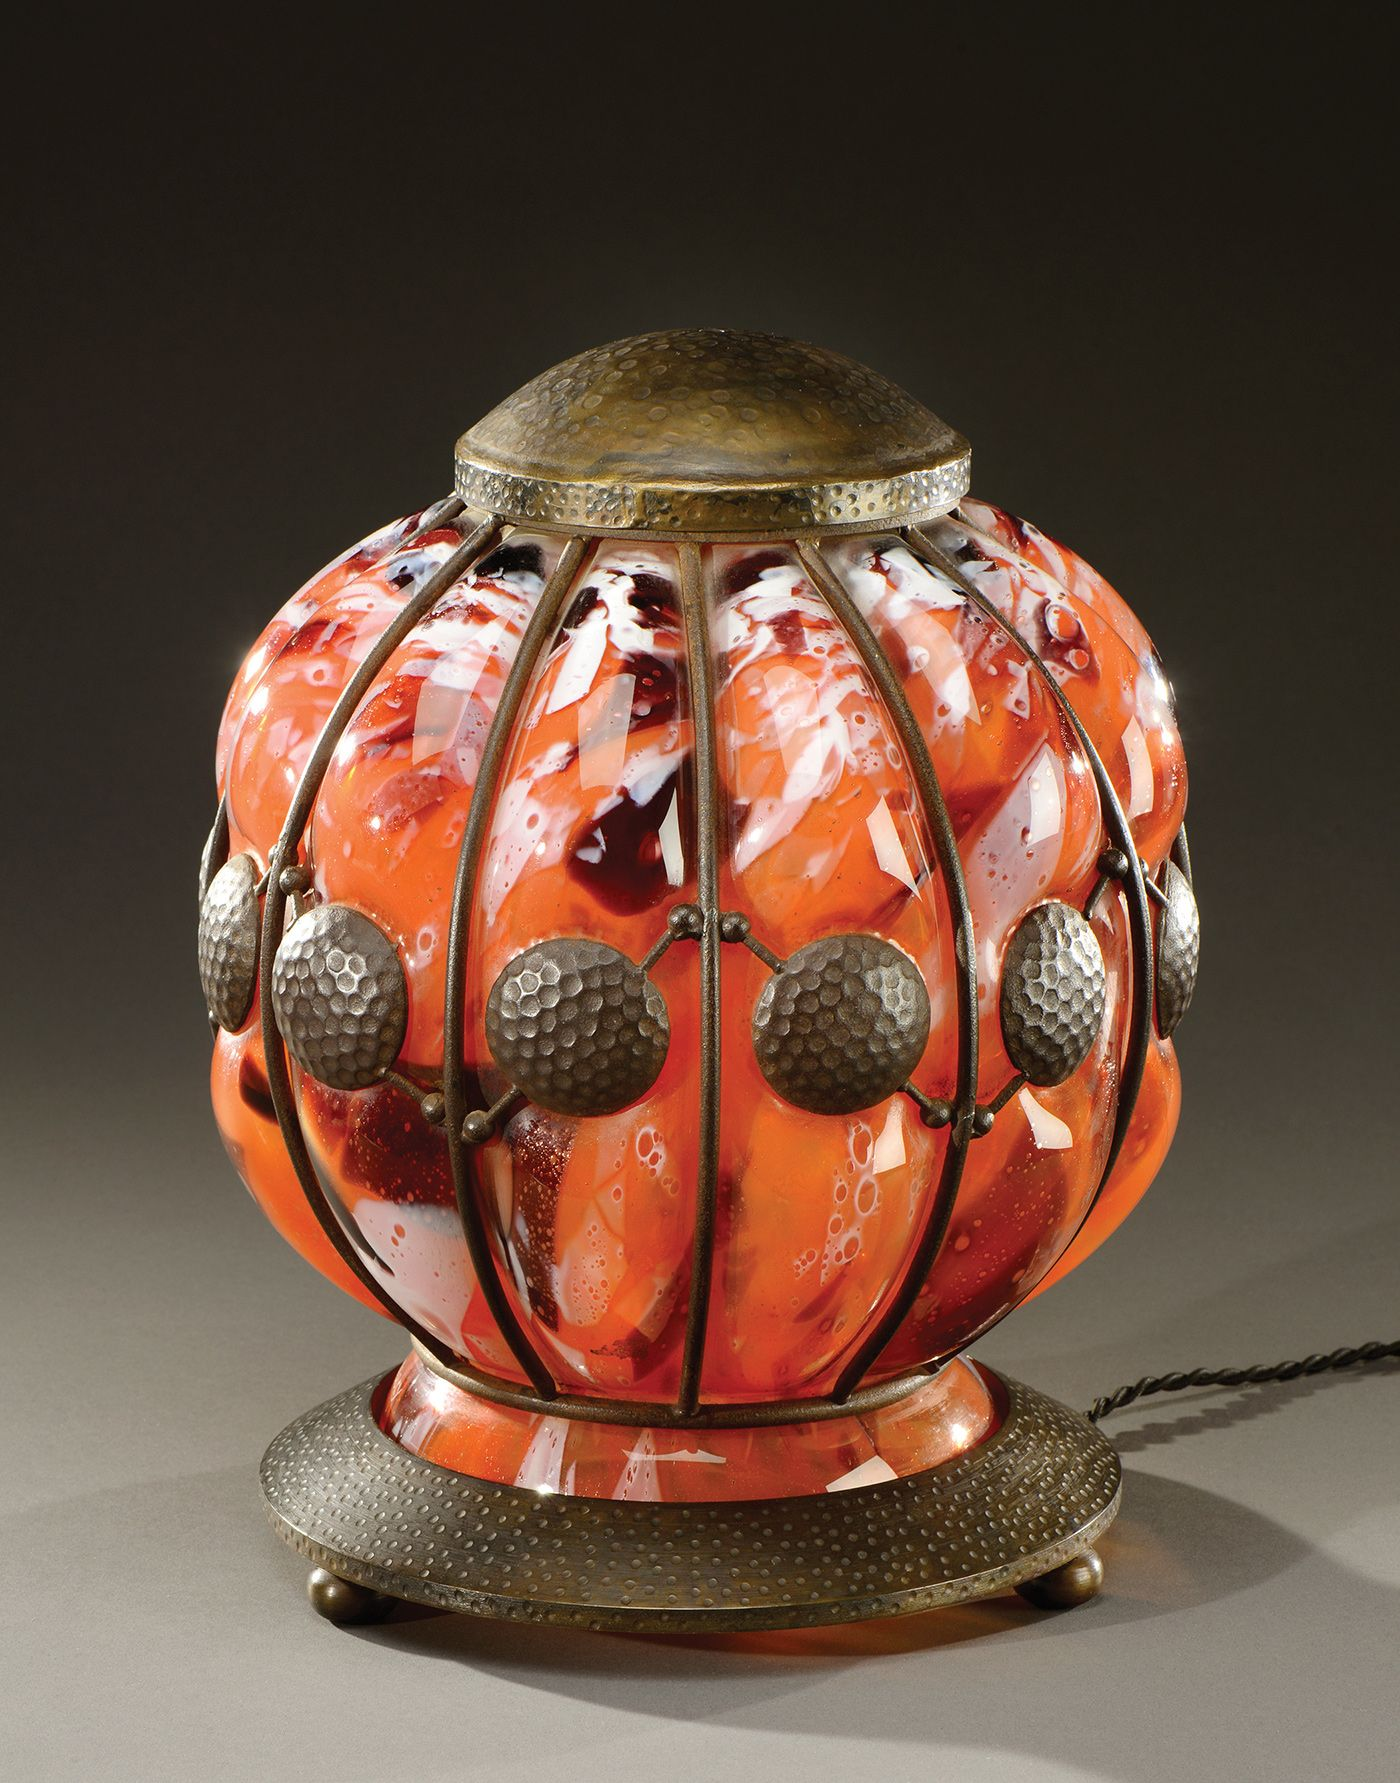 A rounded shape night light in orange coloured glass blown into a wrought iron netting. Signed «Daum Nancy». Circa 1920.